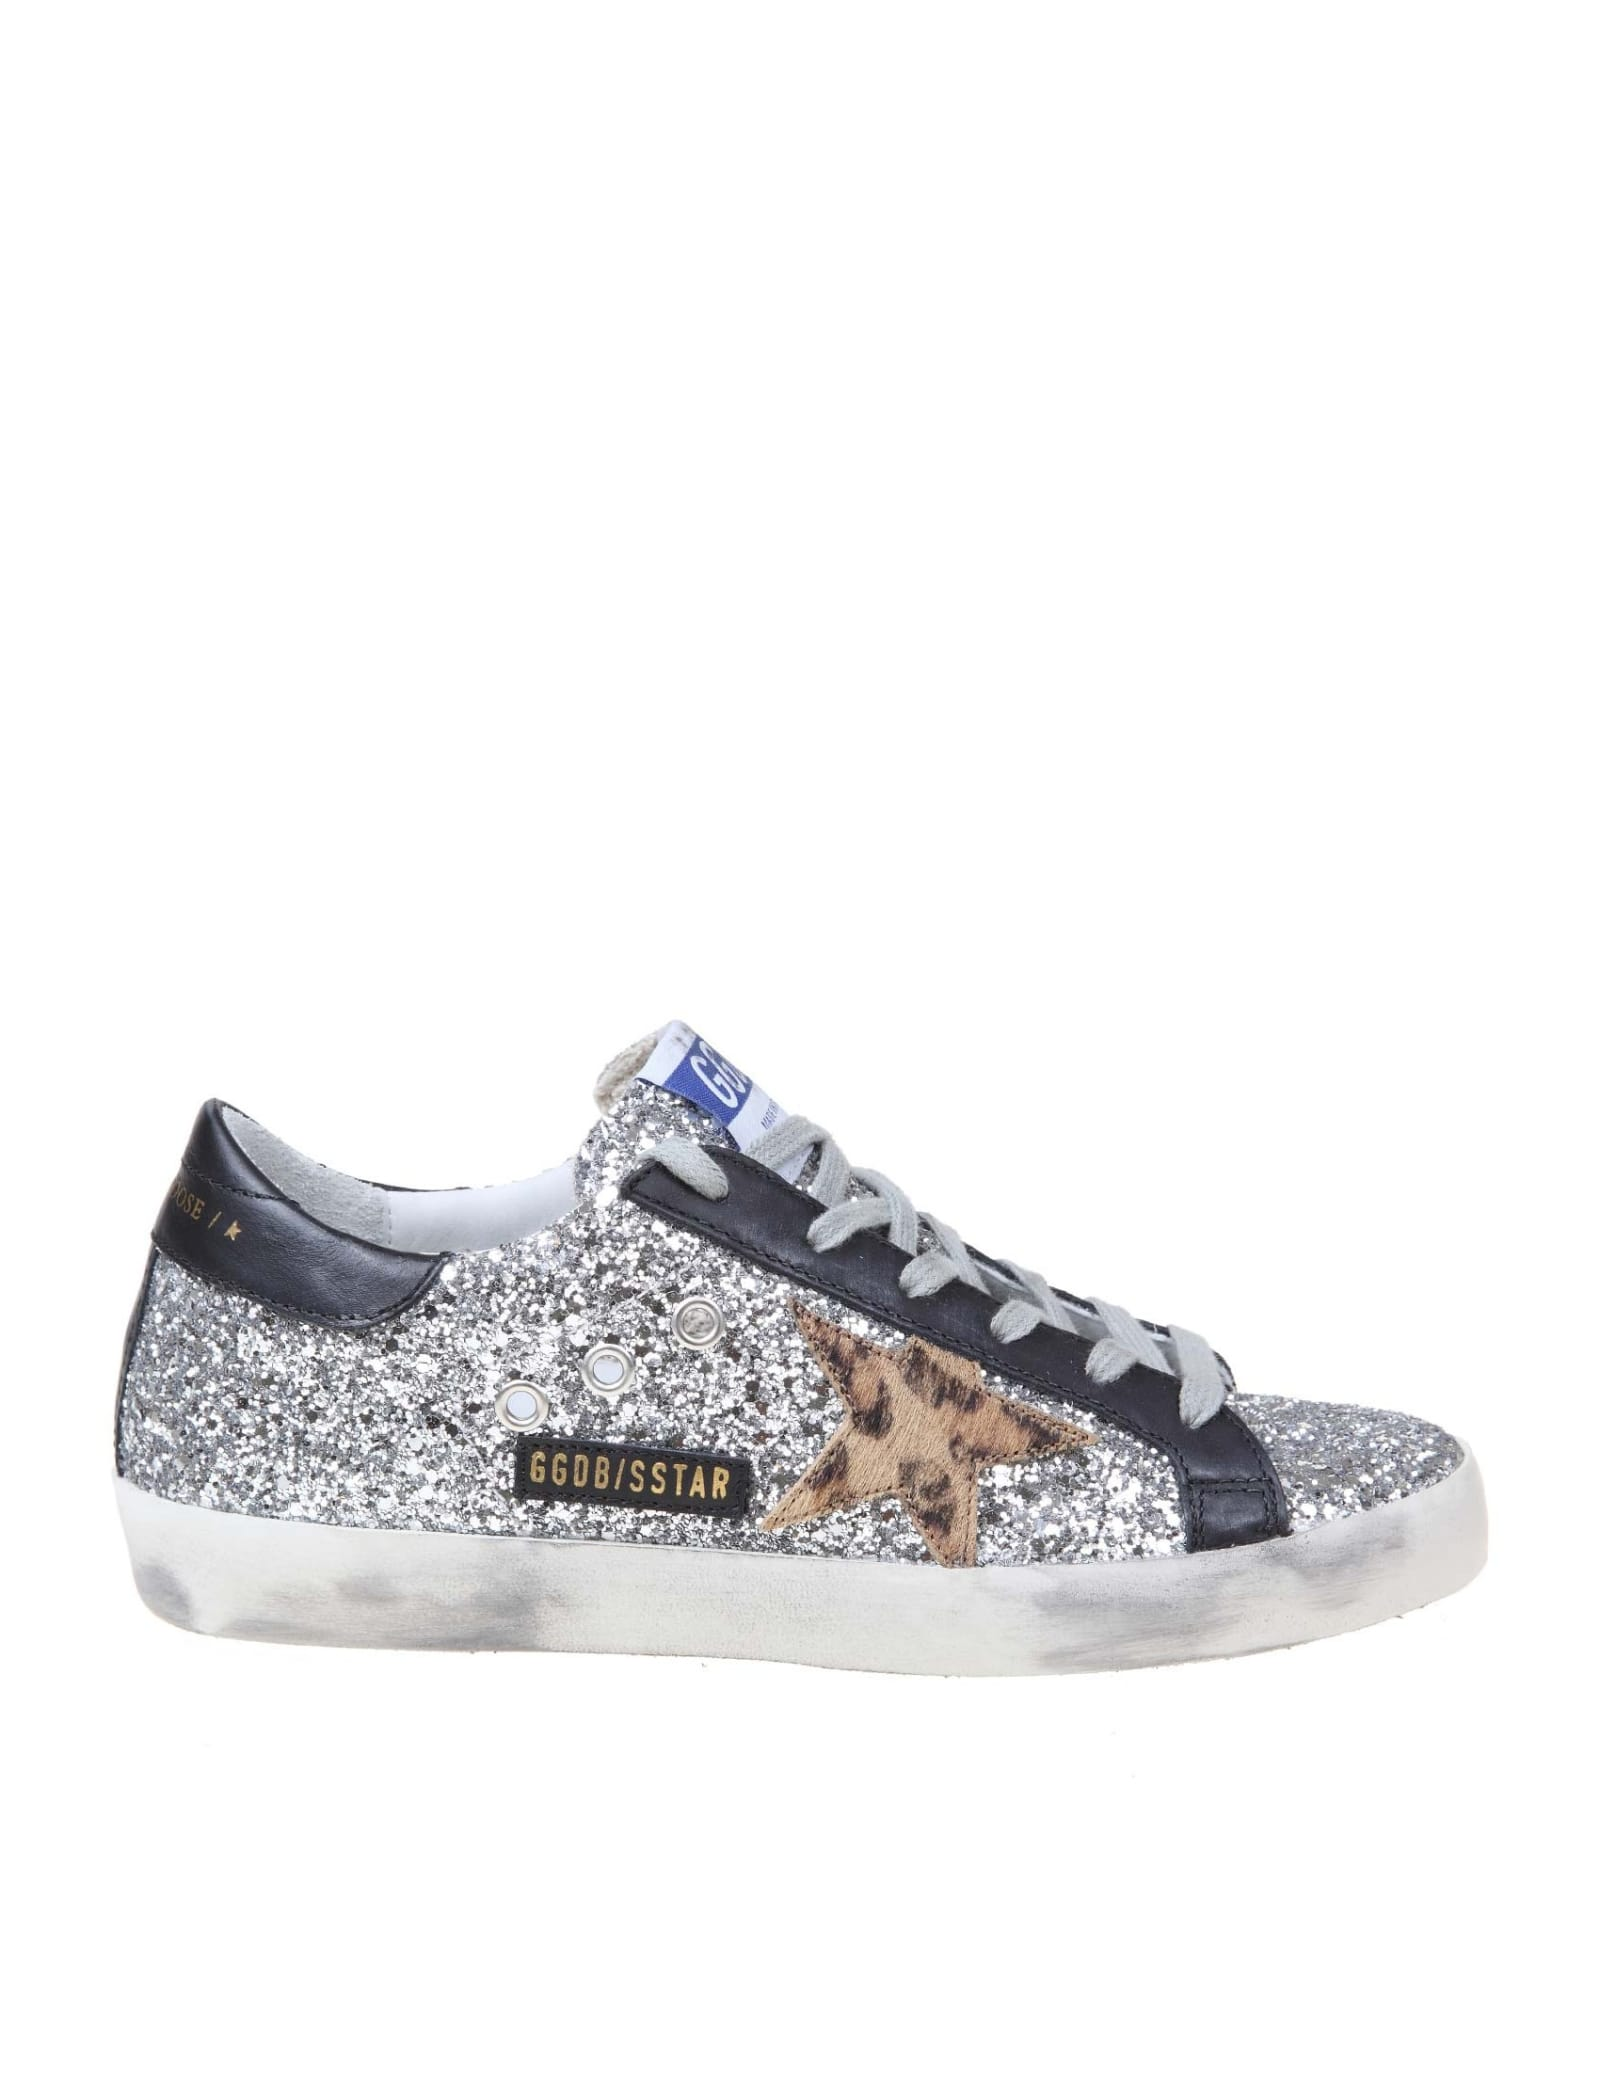 GOLDEN GOOSE SUPERSTAR SNEAKER IN SILVER GLITTER